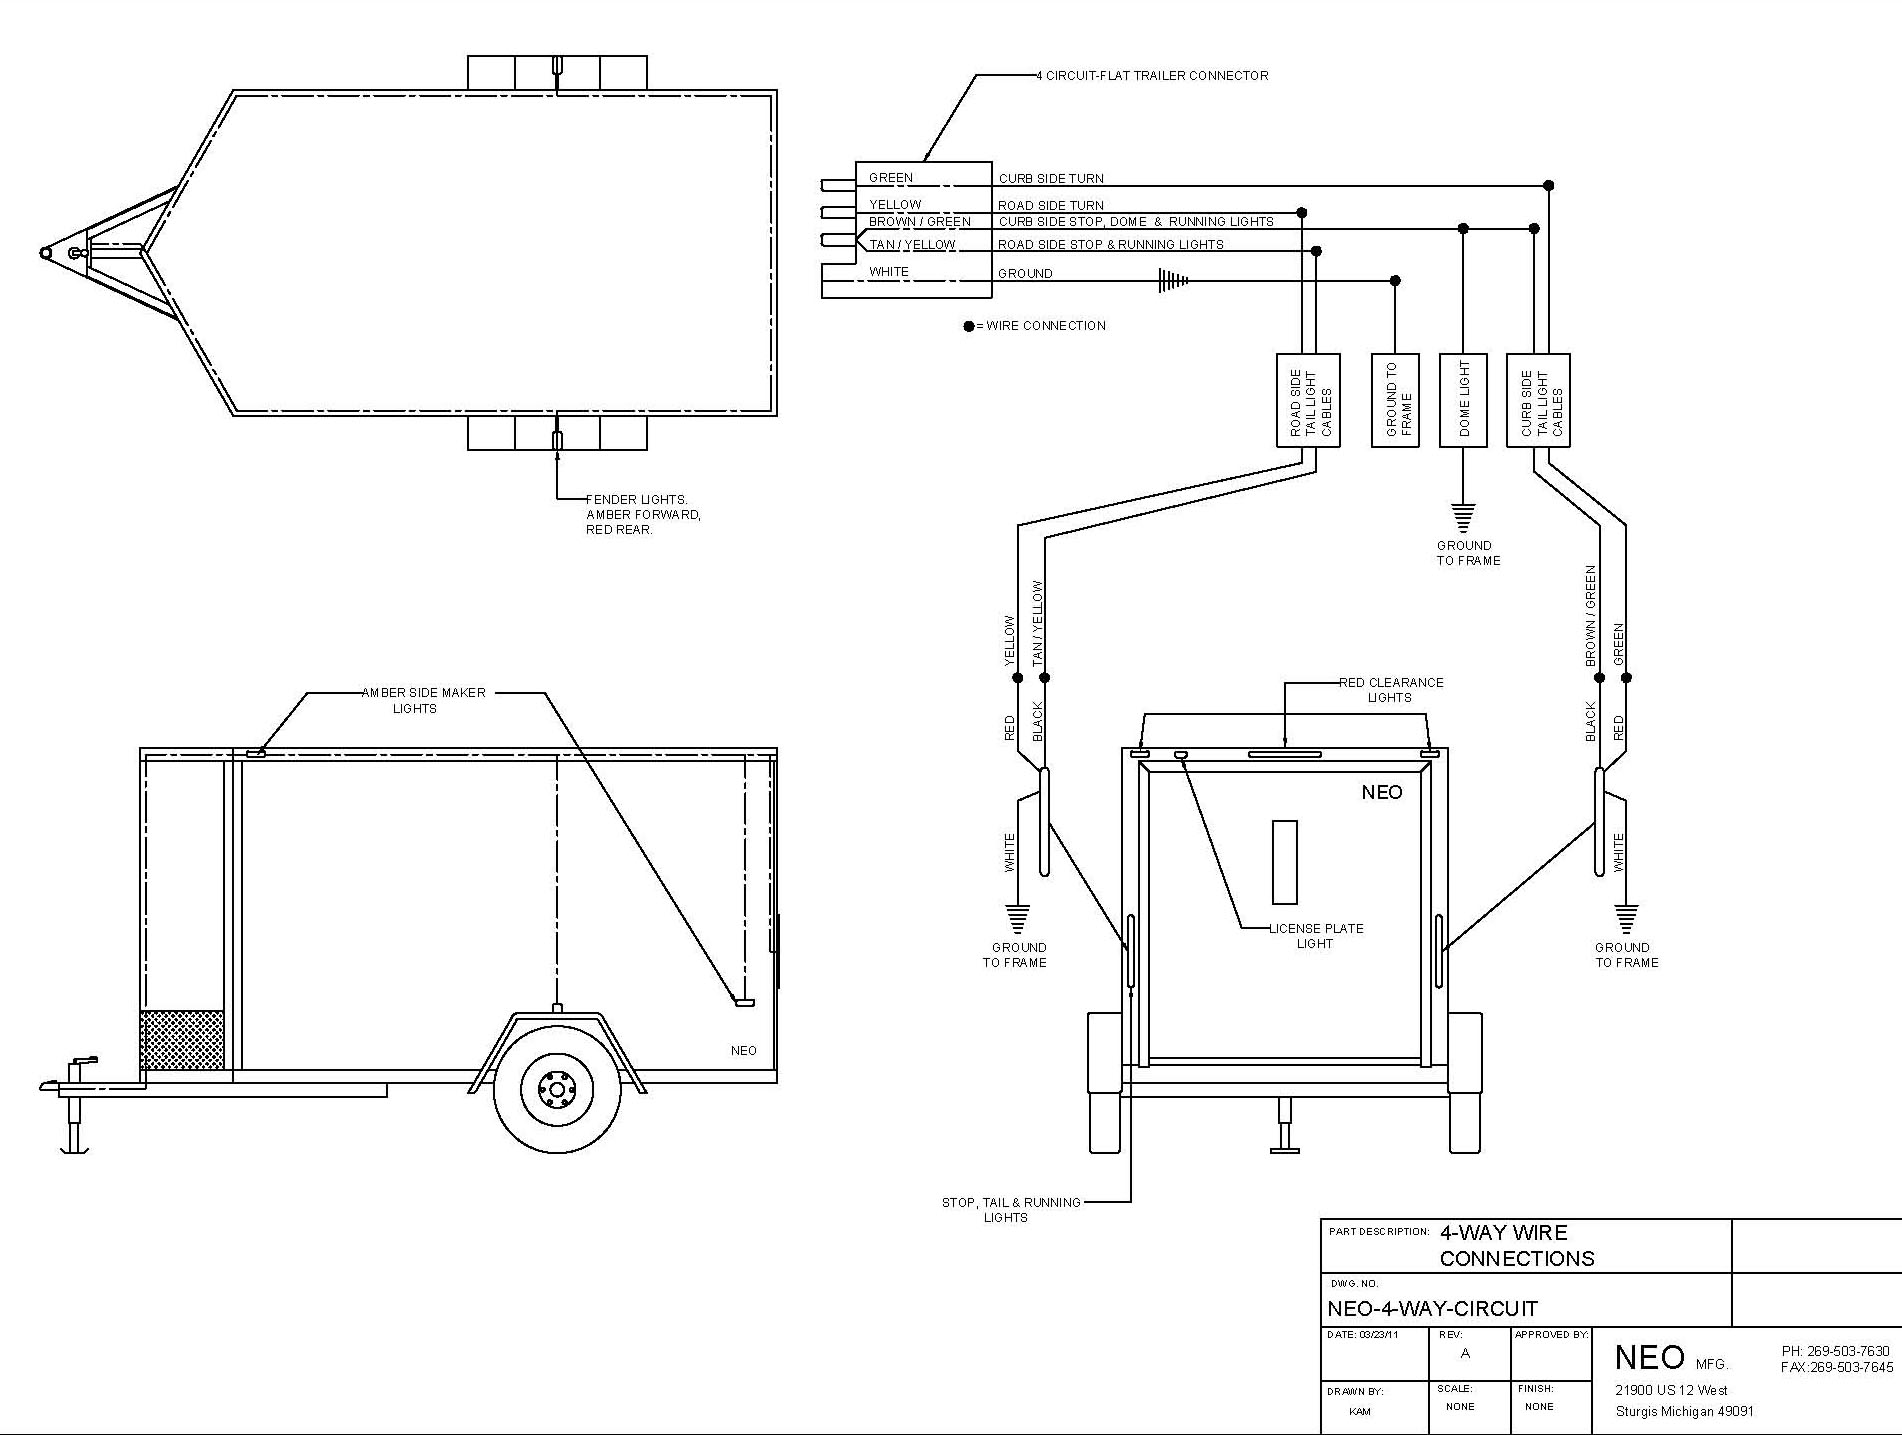 gm 7 pin trailer plug wiring diagram with Wiring Electric Trailer Kes Diagram on Hid Fog Light Wiring Diagram further 2001 Dodge Ram 1500 Ignition Diagram as well Wiring Diagram Fisher Minute Mount further 7 Blade Rv Plug Wiring Diagram also Wiring Diagram Trailer Plug Australia.